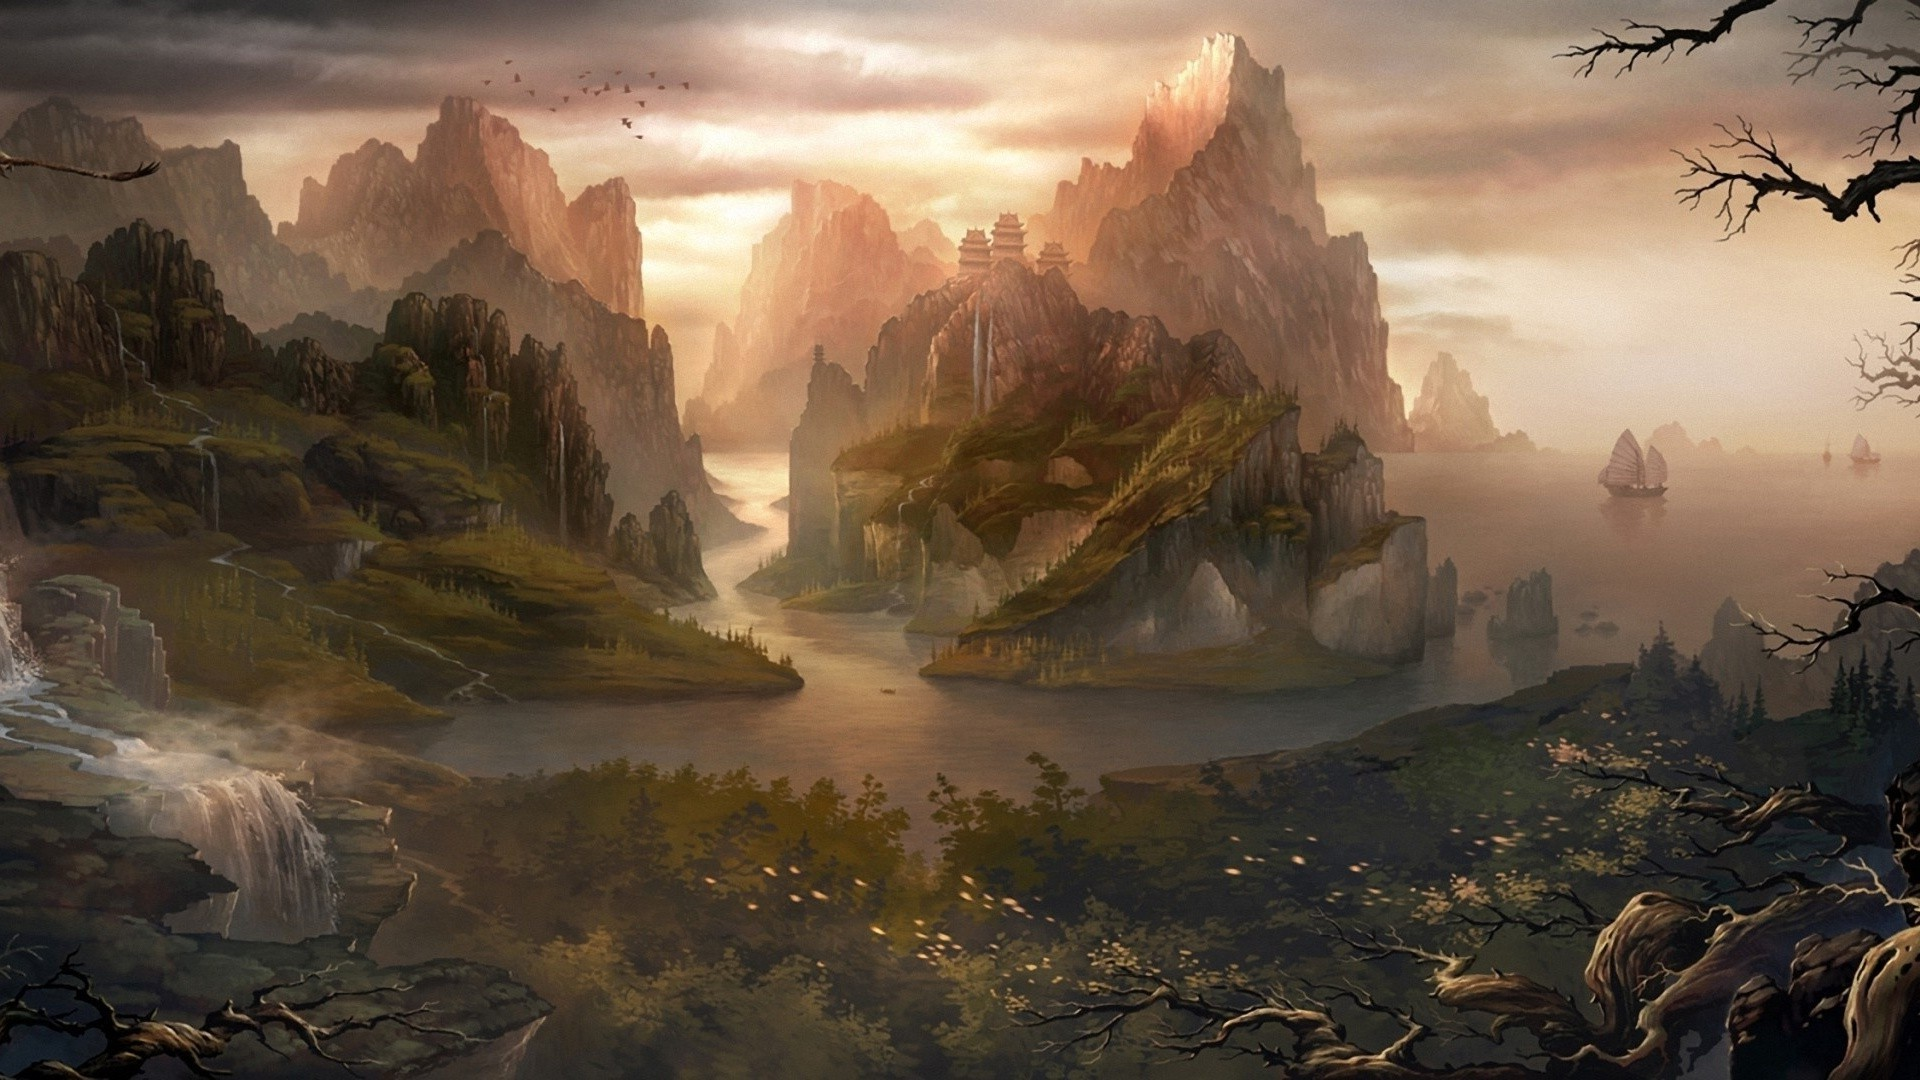 Stunning Hd Fantasy Wallpapers: 75+ Fantasy Backgrounds ·① Download Free Full HD